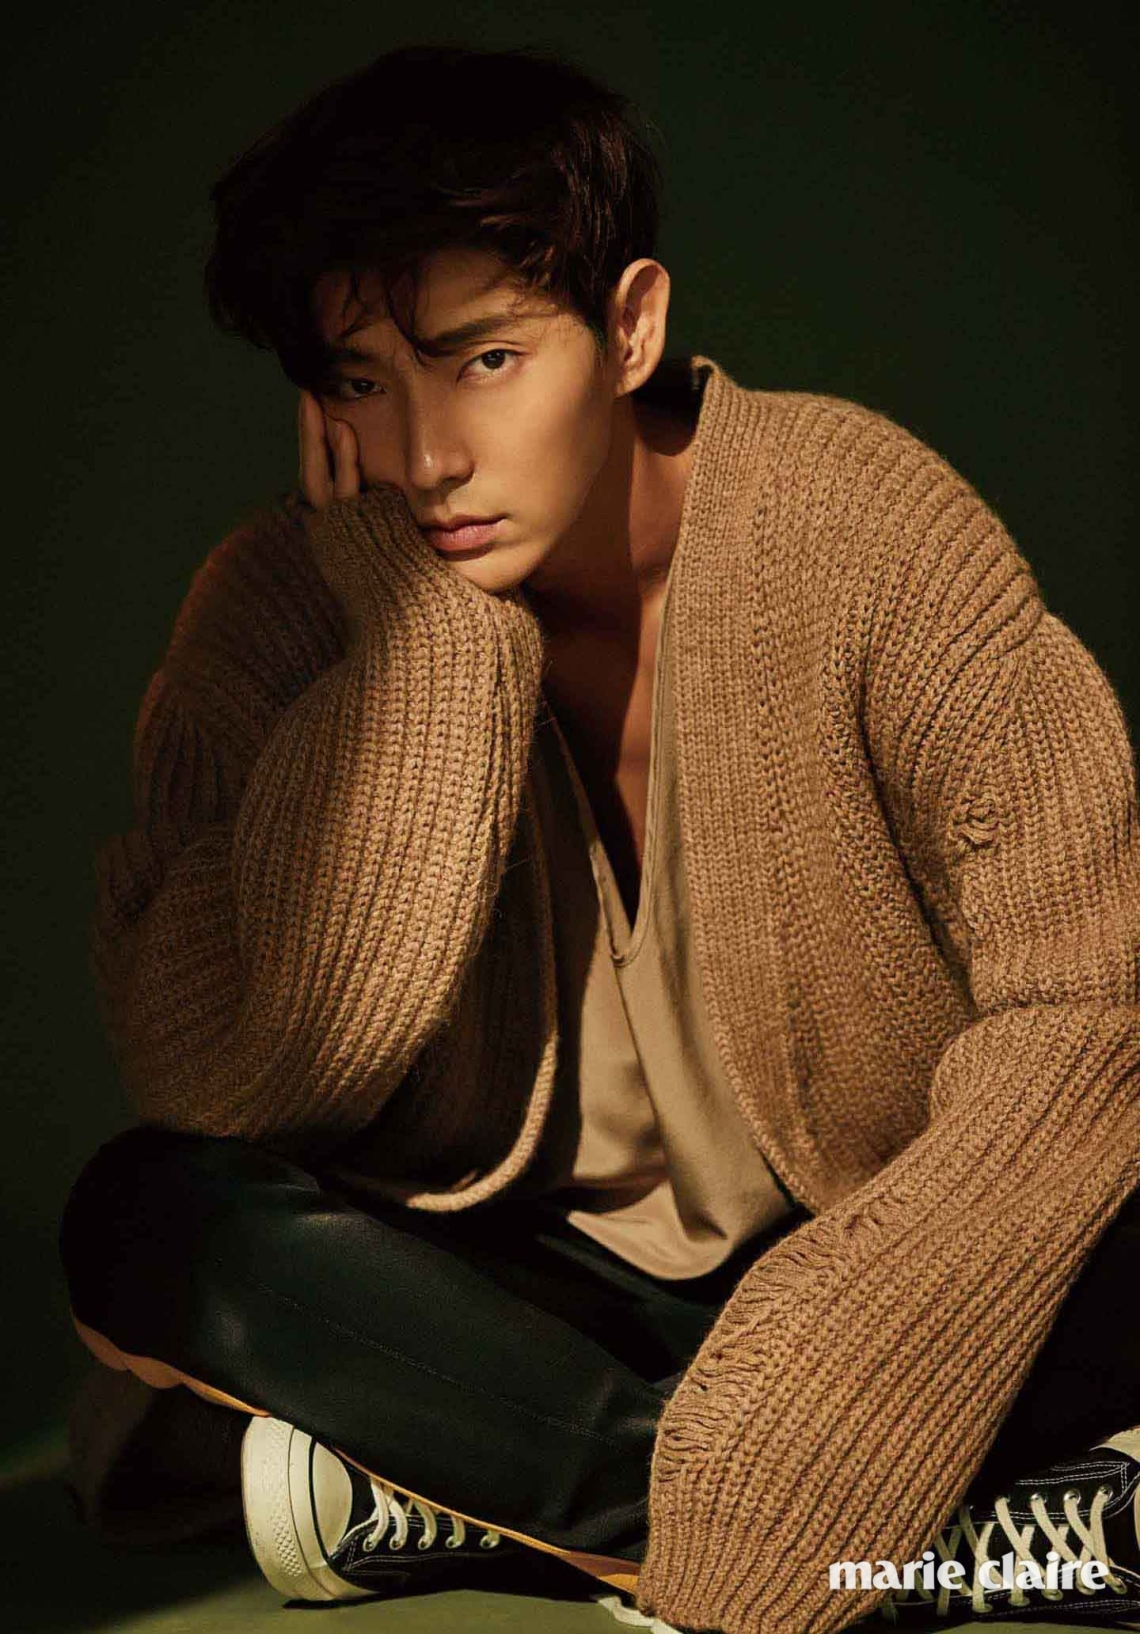 Lee Joon Gi for Marie Claire 02 Drama Chronicles